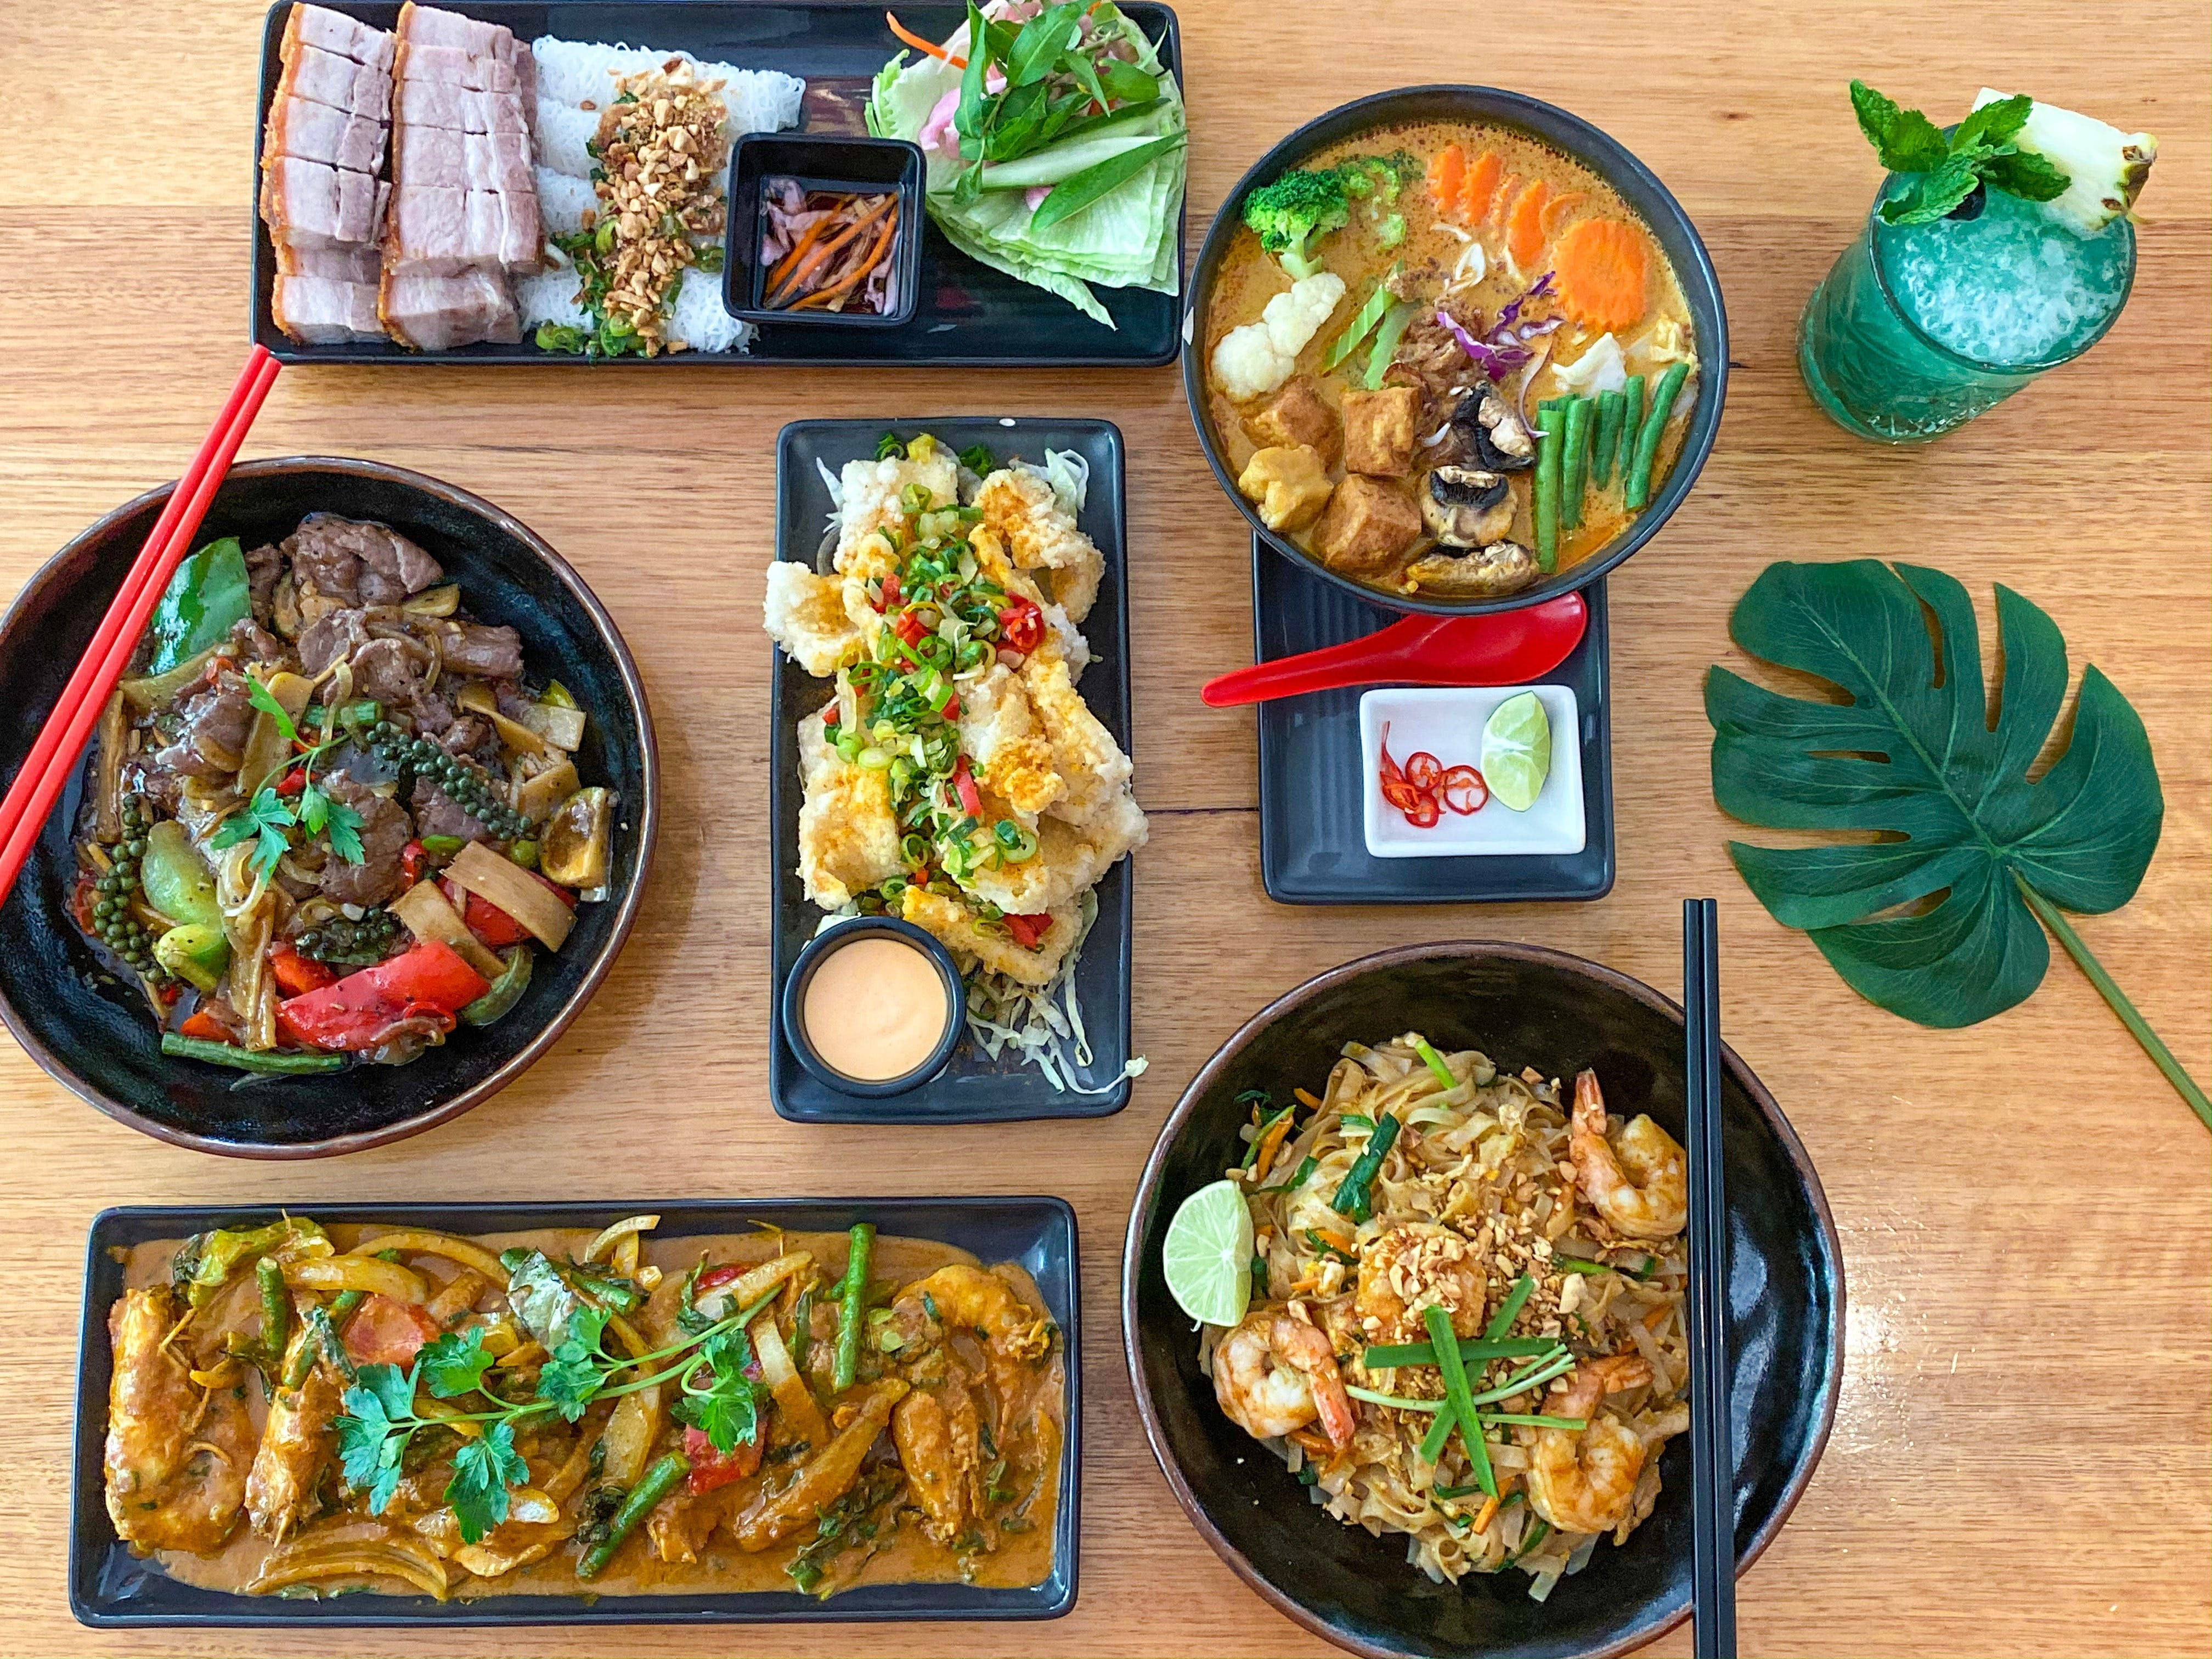 Chow A Taste of South East Asia - Restaurant Find